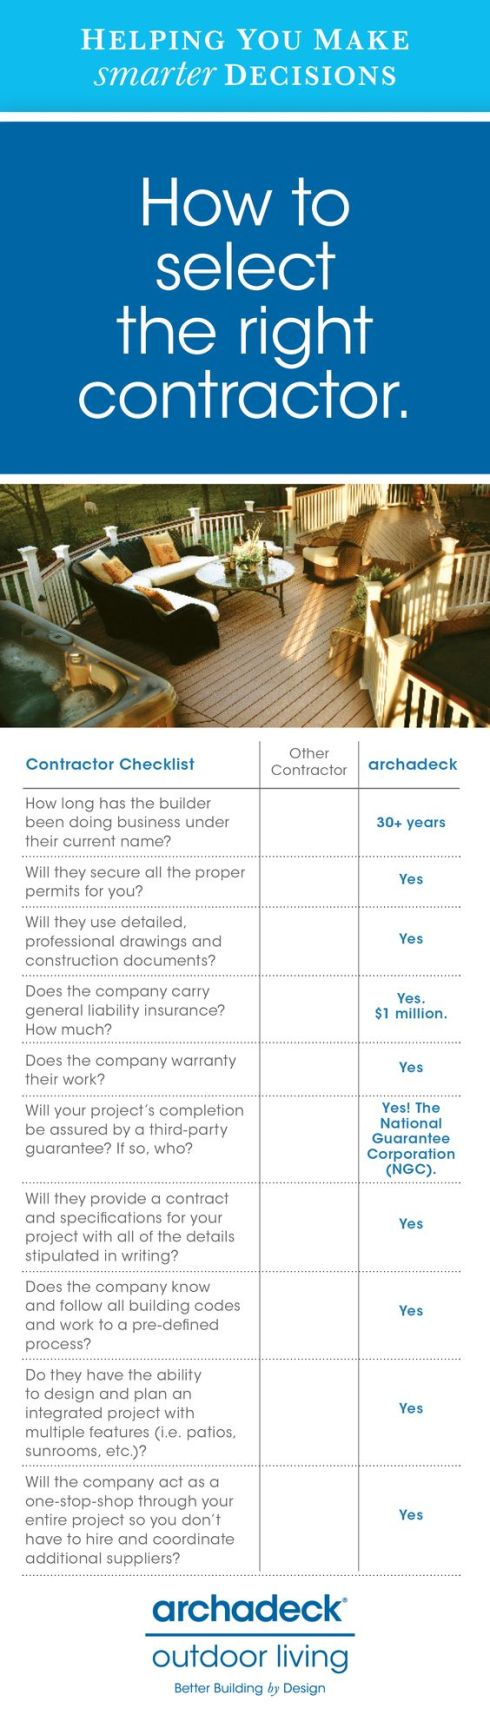 How To Select The Right Contractor by Archadeck